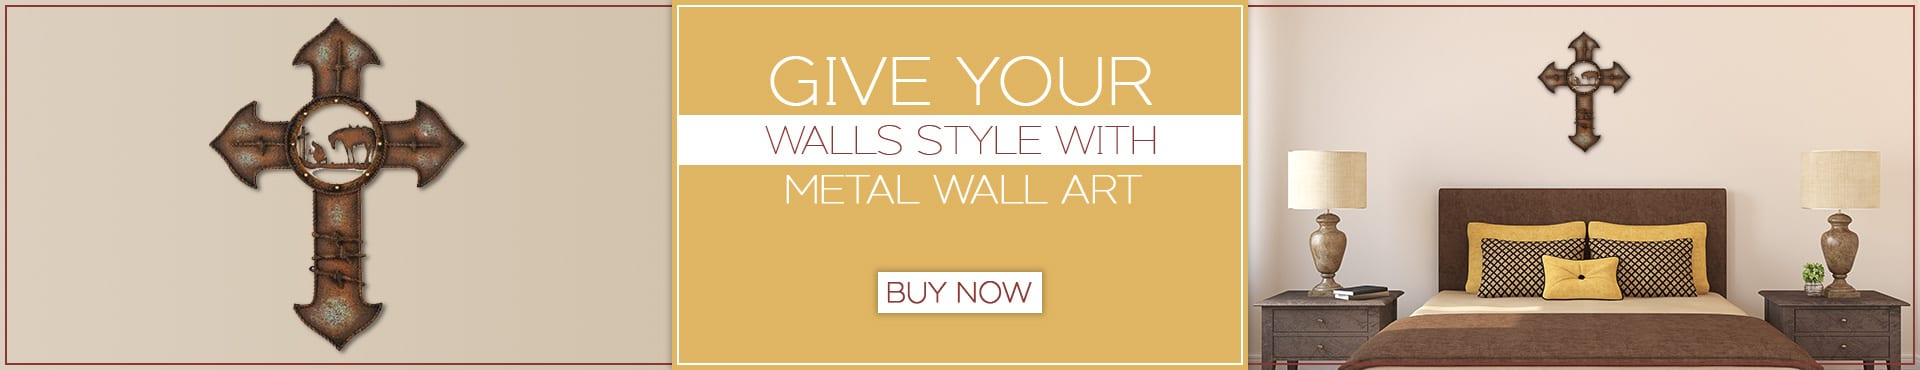 Give your walls style with metal wall art